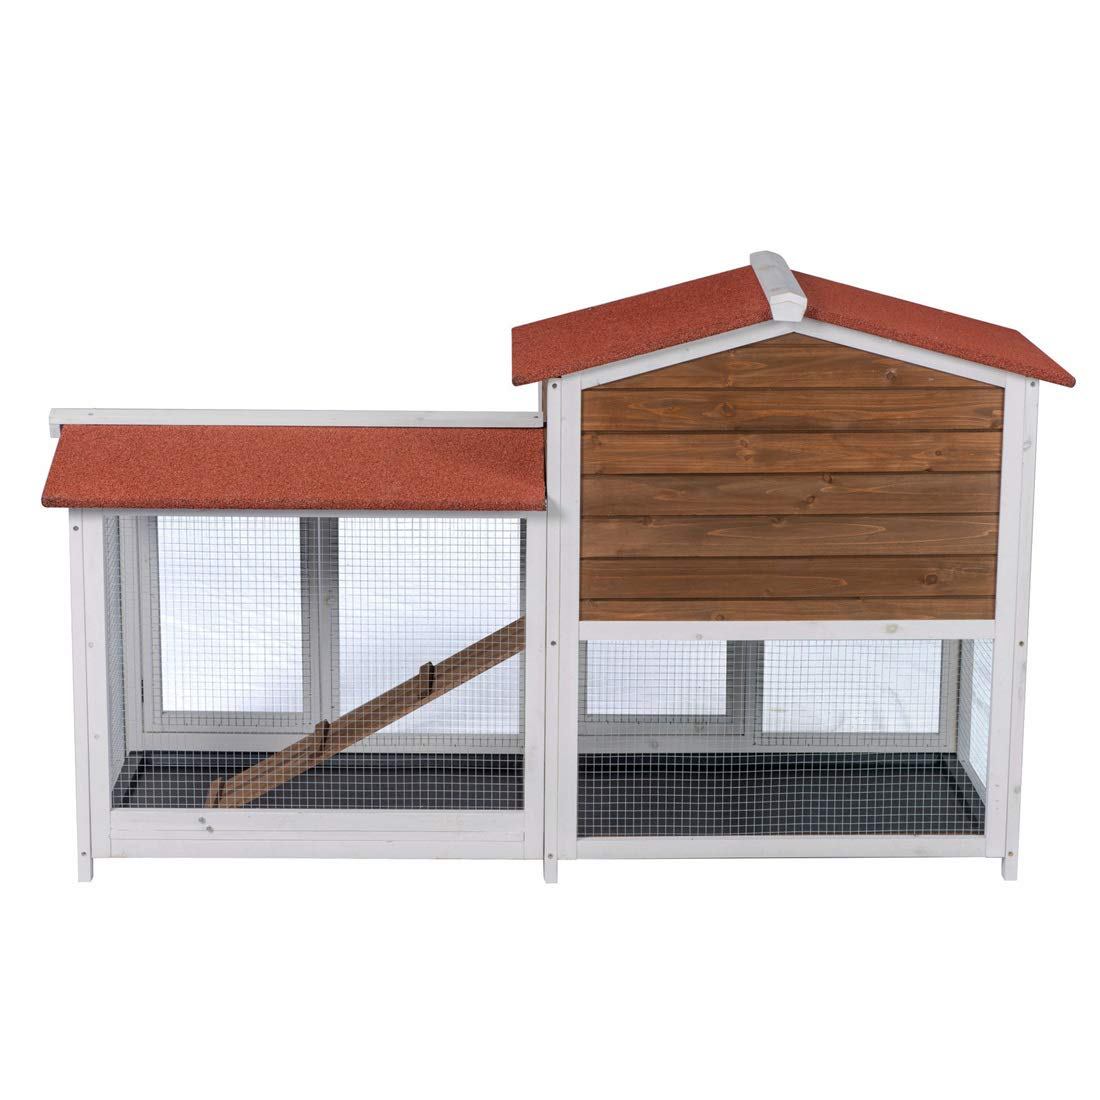 Good Life Two Floors Wooden Outdoor Indoor Roof Waterproof Bunny Hutch Rabbit Cage Guinea Pig Coop PET House for Small to Middle Animals with Stairs and 3 Cleaning Tray by GOOD LIFE USA (Image #7)